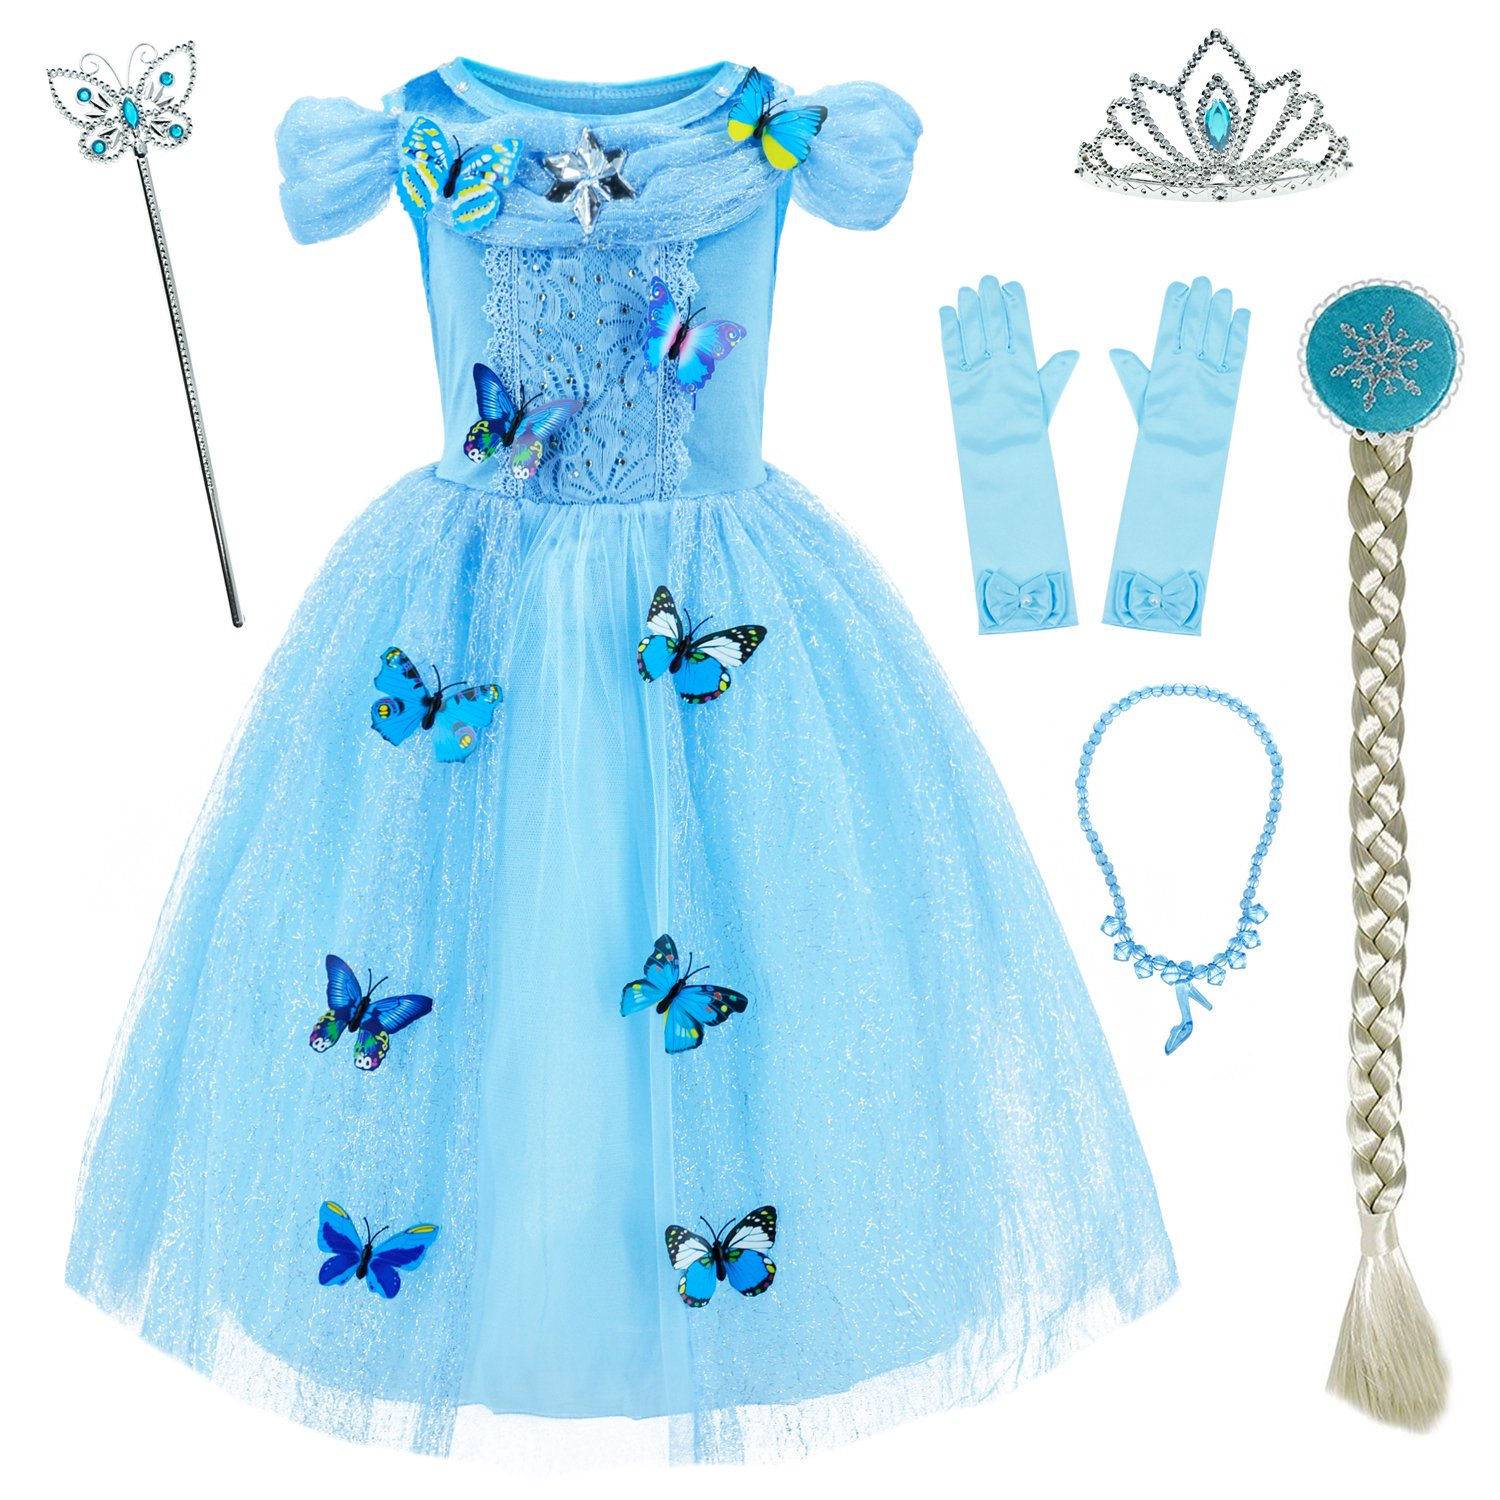 3db9a00a Amazon.com: Princess Cinderella Costume Girls Dress Up With Accessories 3-10  Years: Clothing